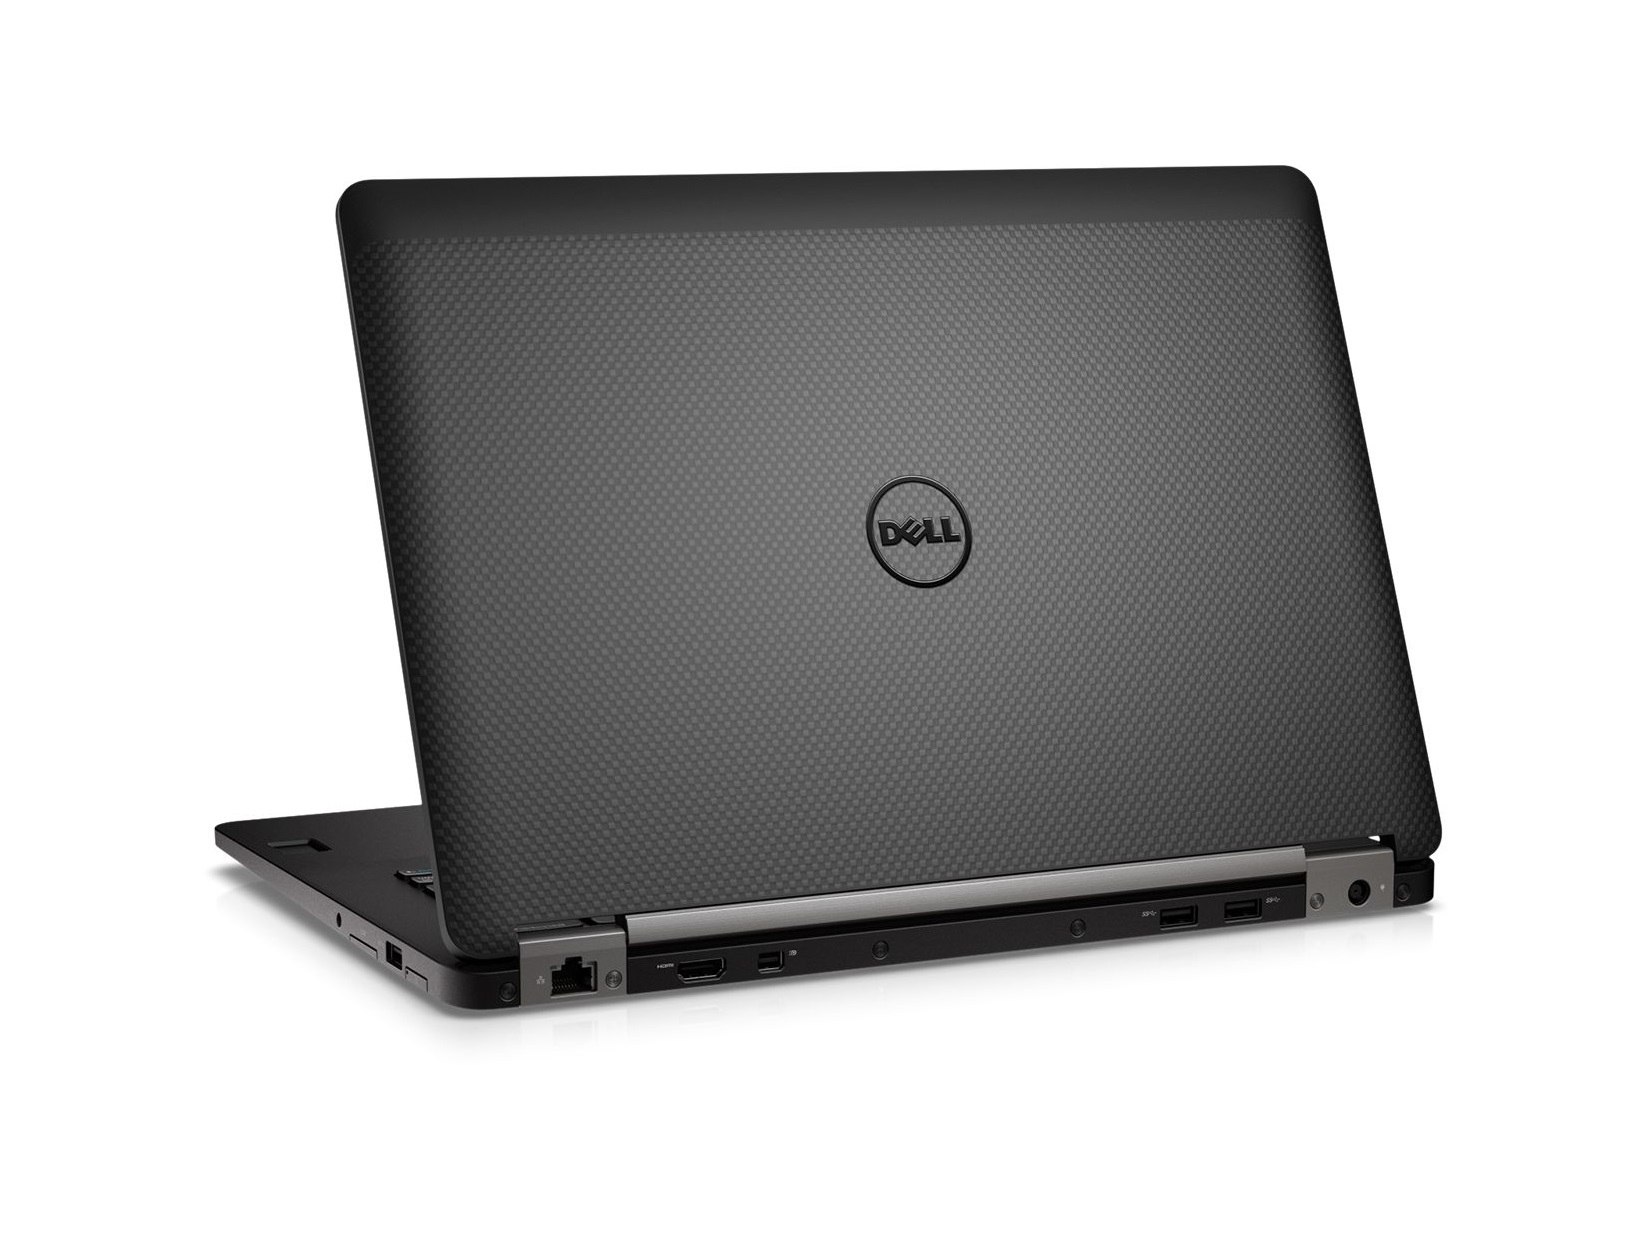 0df1ebc61ff DELL Latitude E7470 NFMXG Core i7-6600U 8GB 256GB SSD 14IN BT CAM Win 10  Pro Black